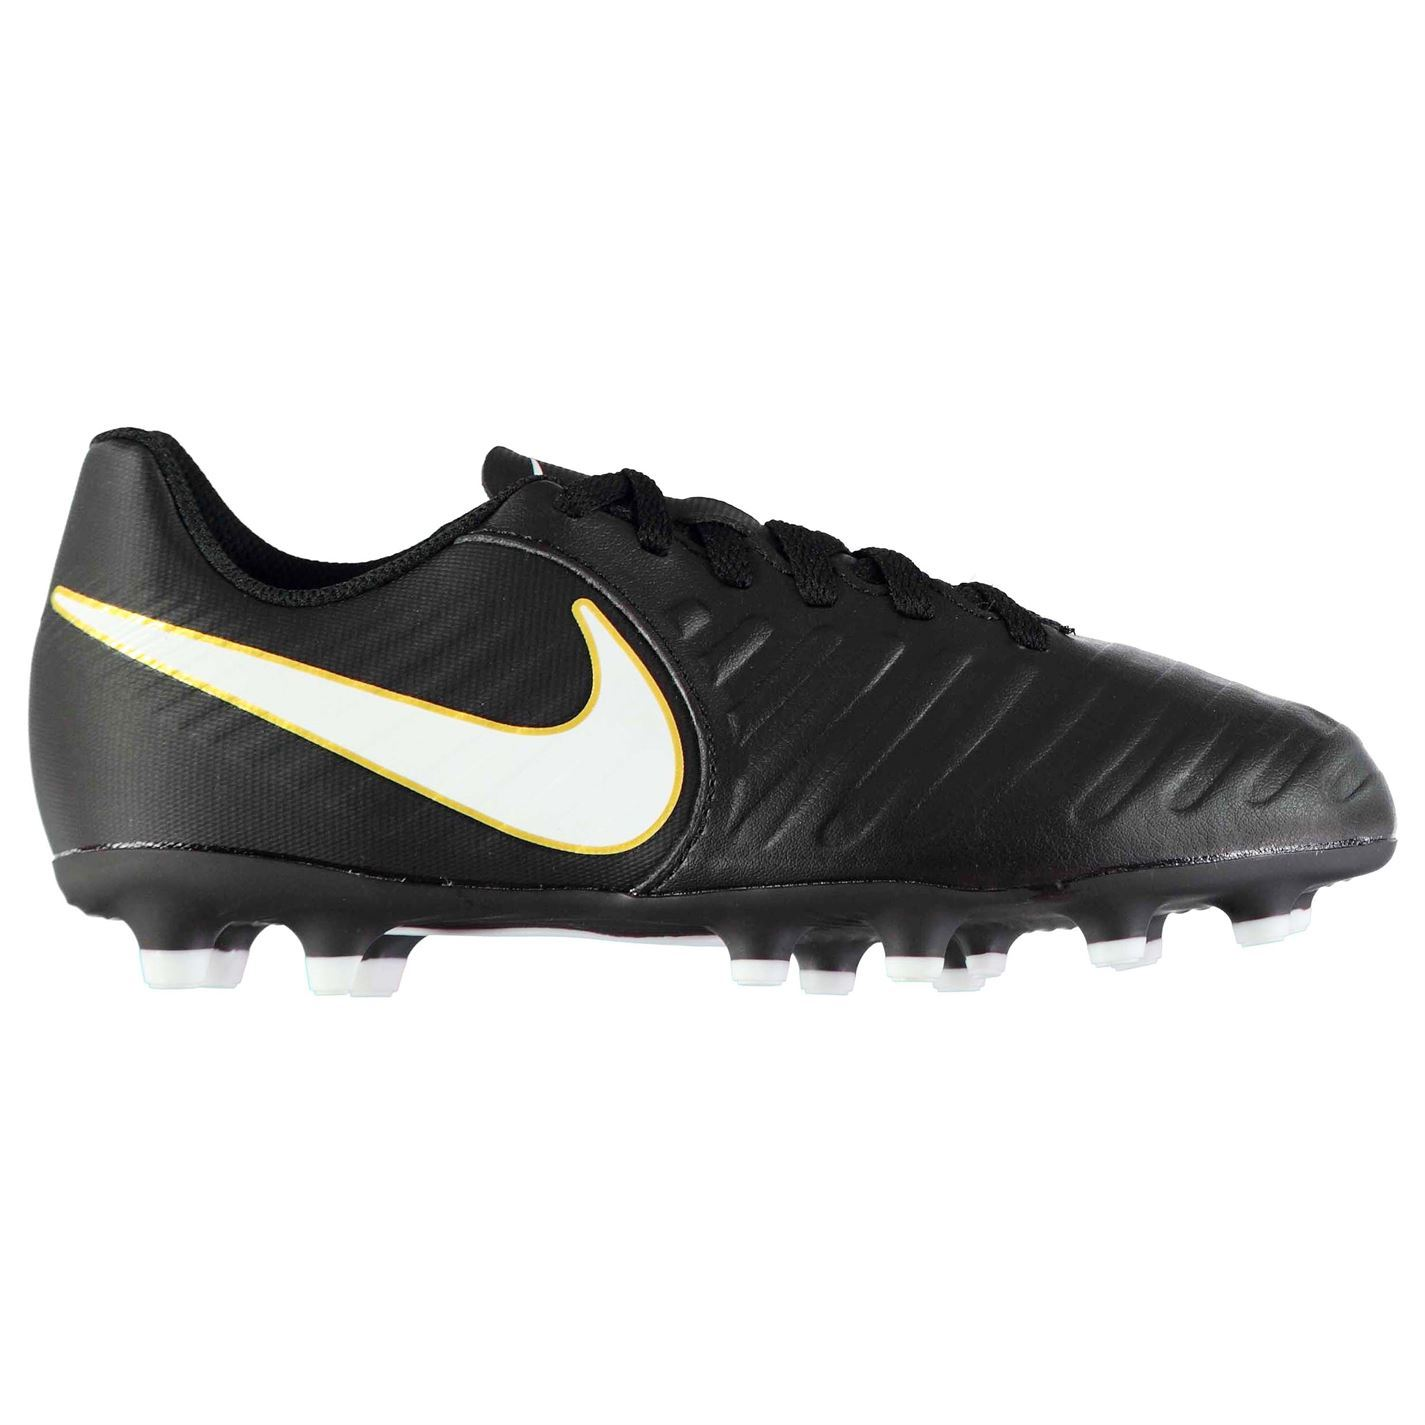 e8b705fde ... Nike Tiempo Rio FG Firm Ground Football Boots Juniors Black White Soccer  Cleats ...